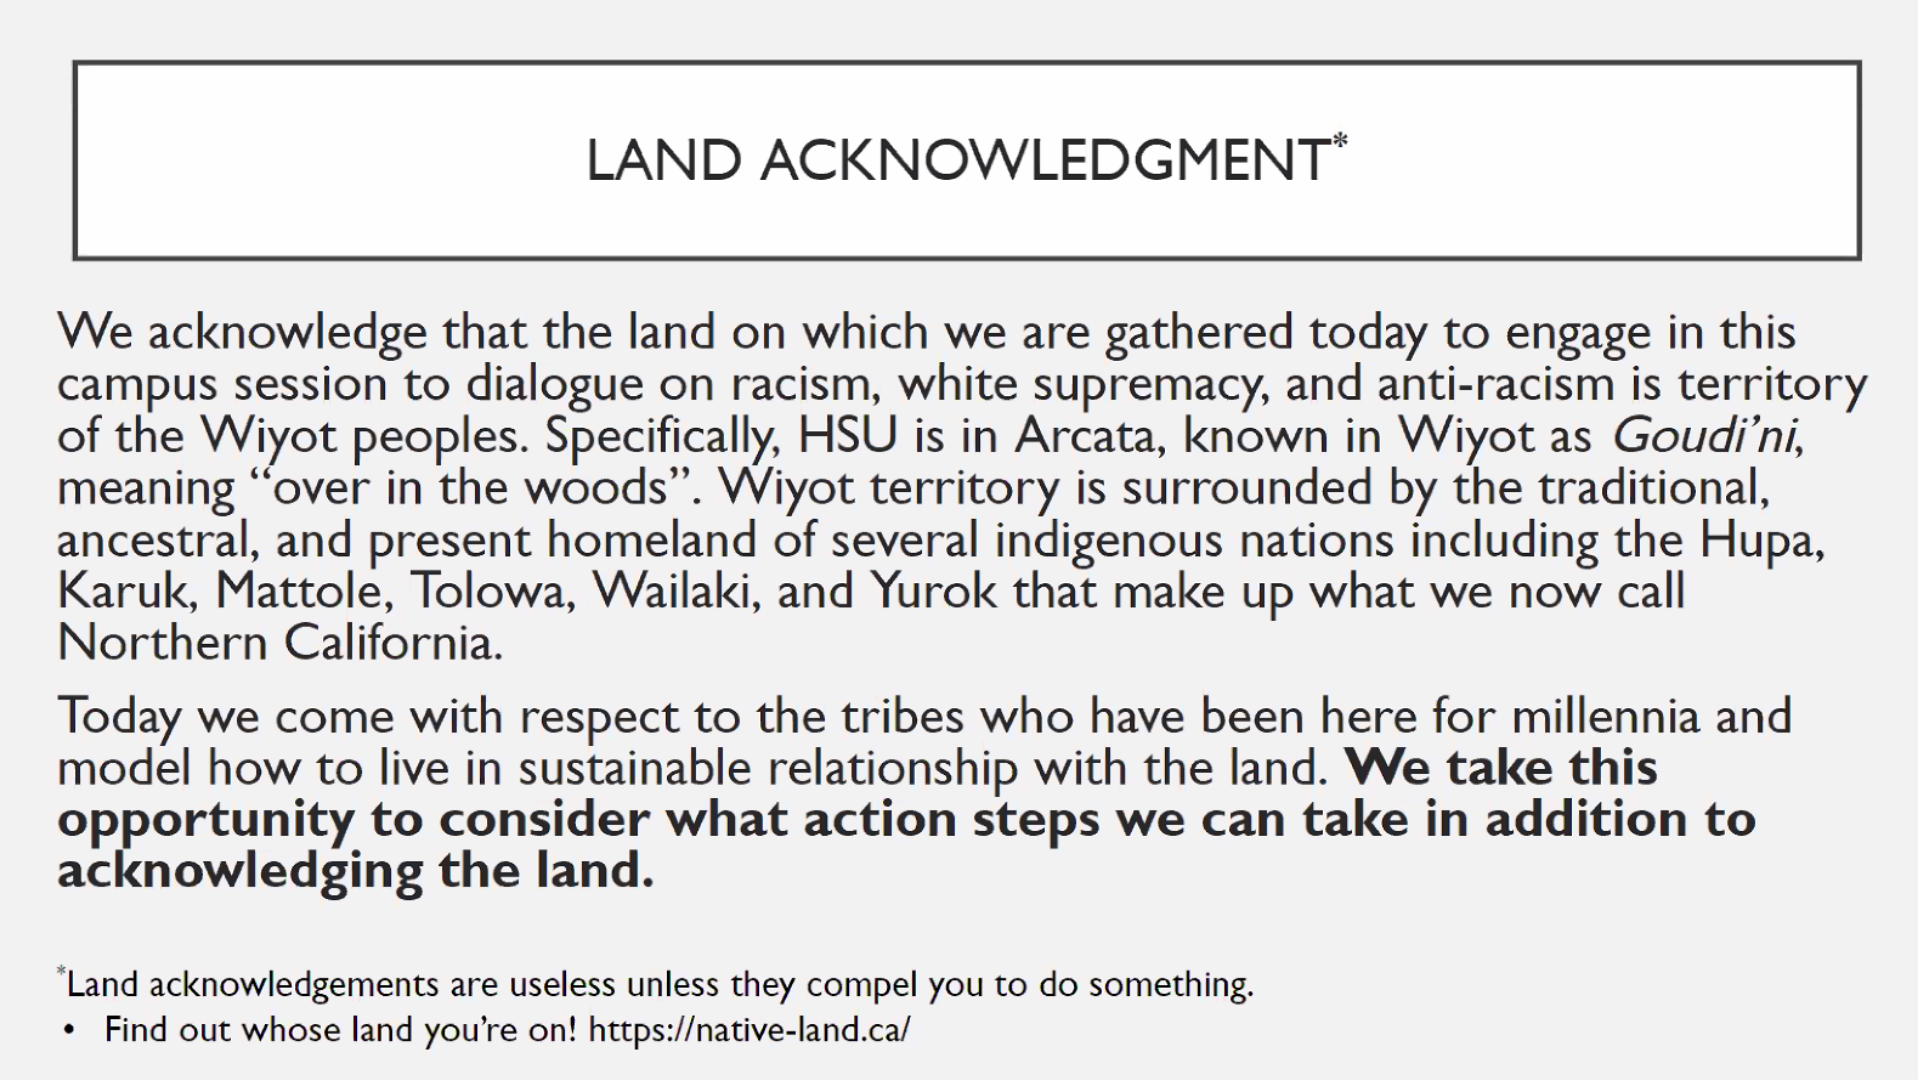 Sample Powerpoint Slide for Land Recognition